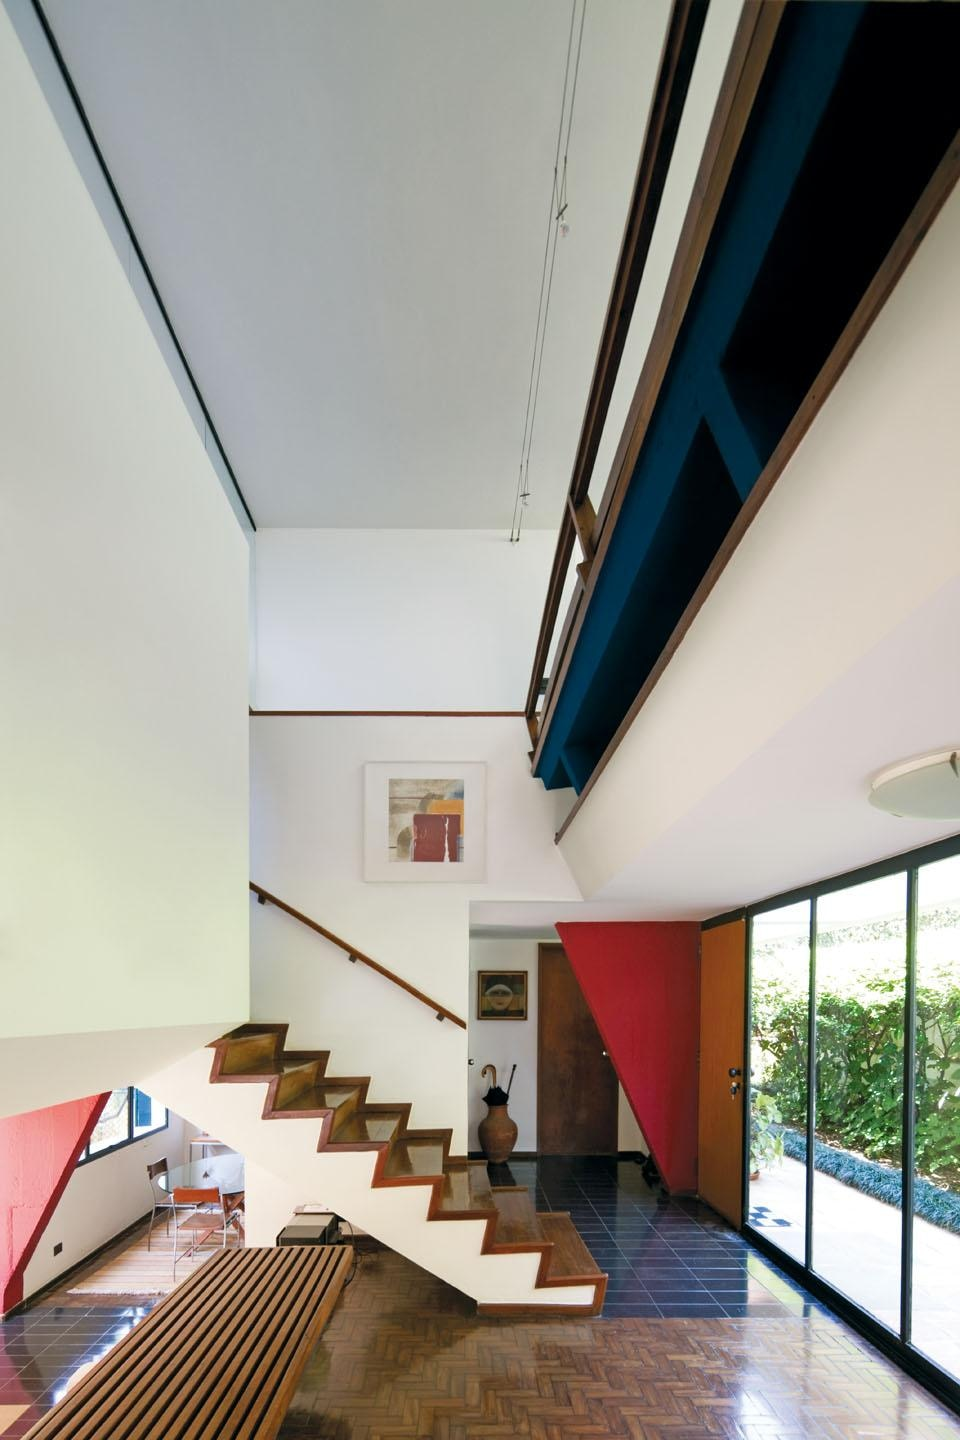 The two-storey Rubens